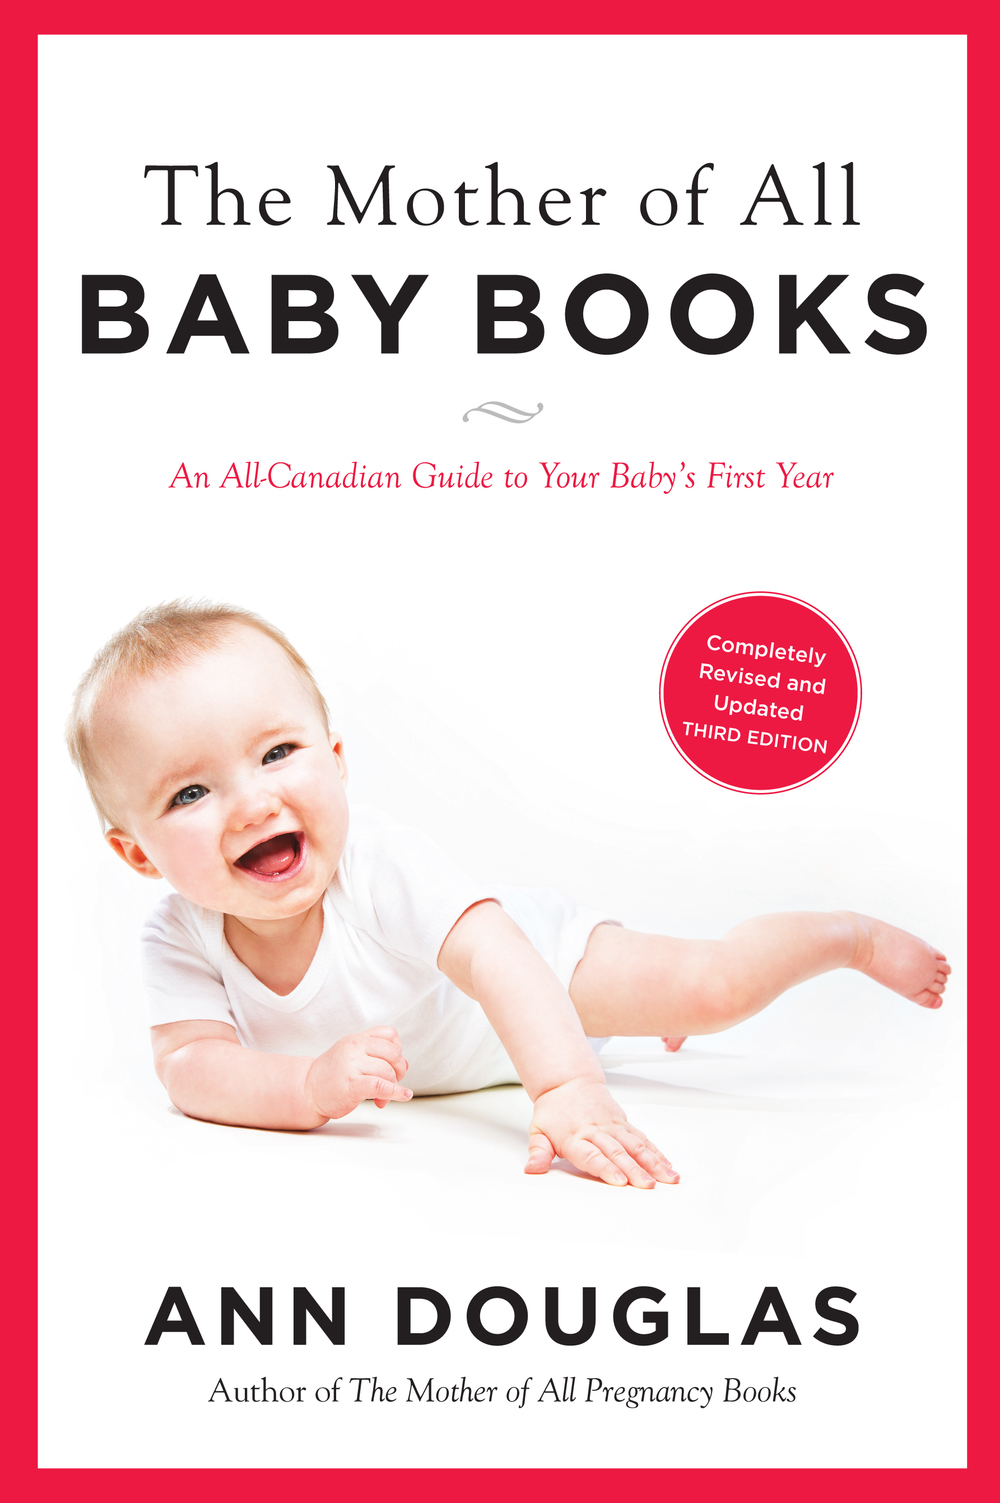 Canada's bestselling guide to bringing up baby.